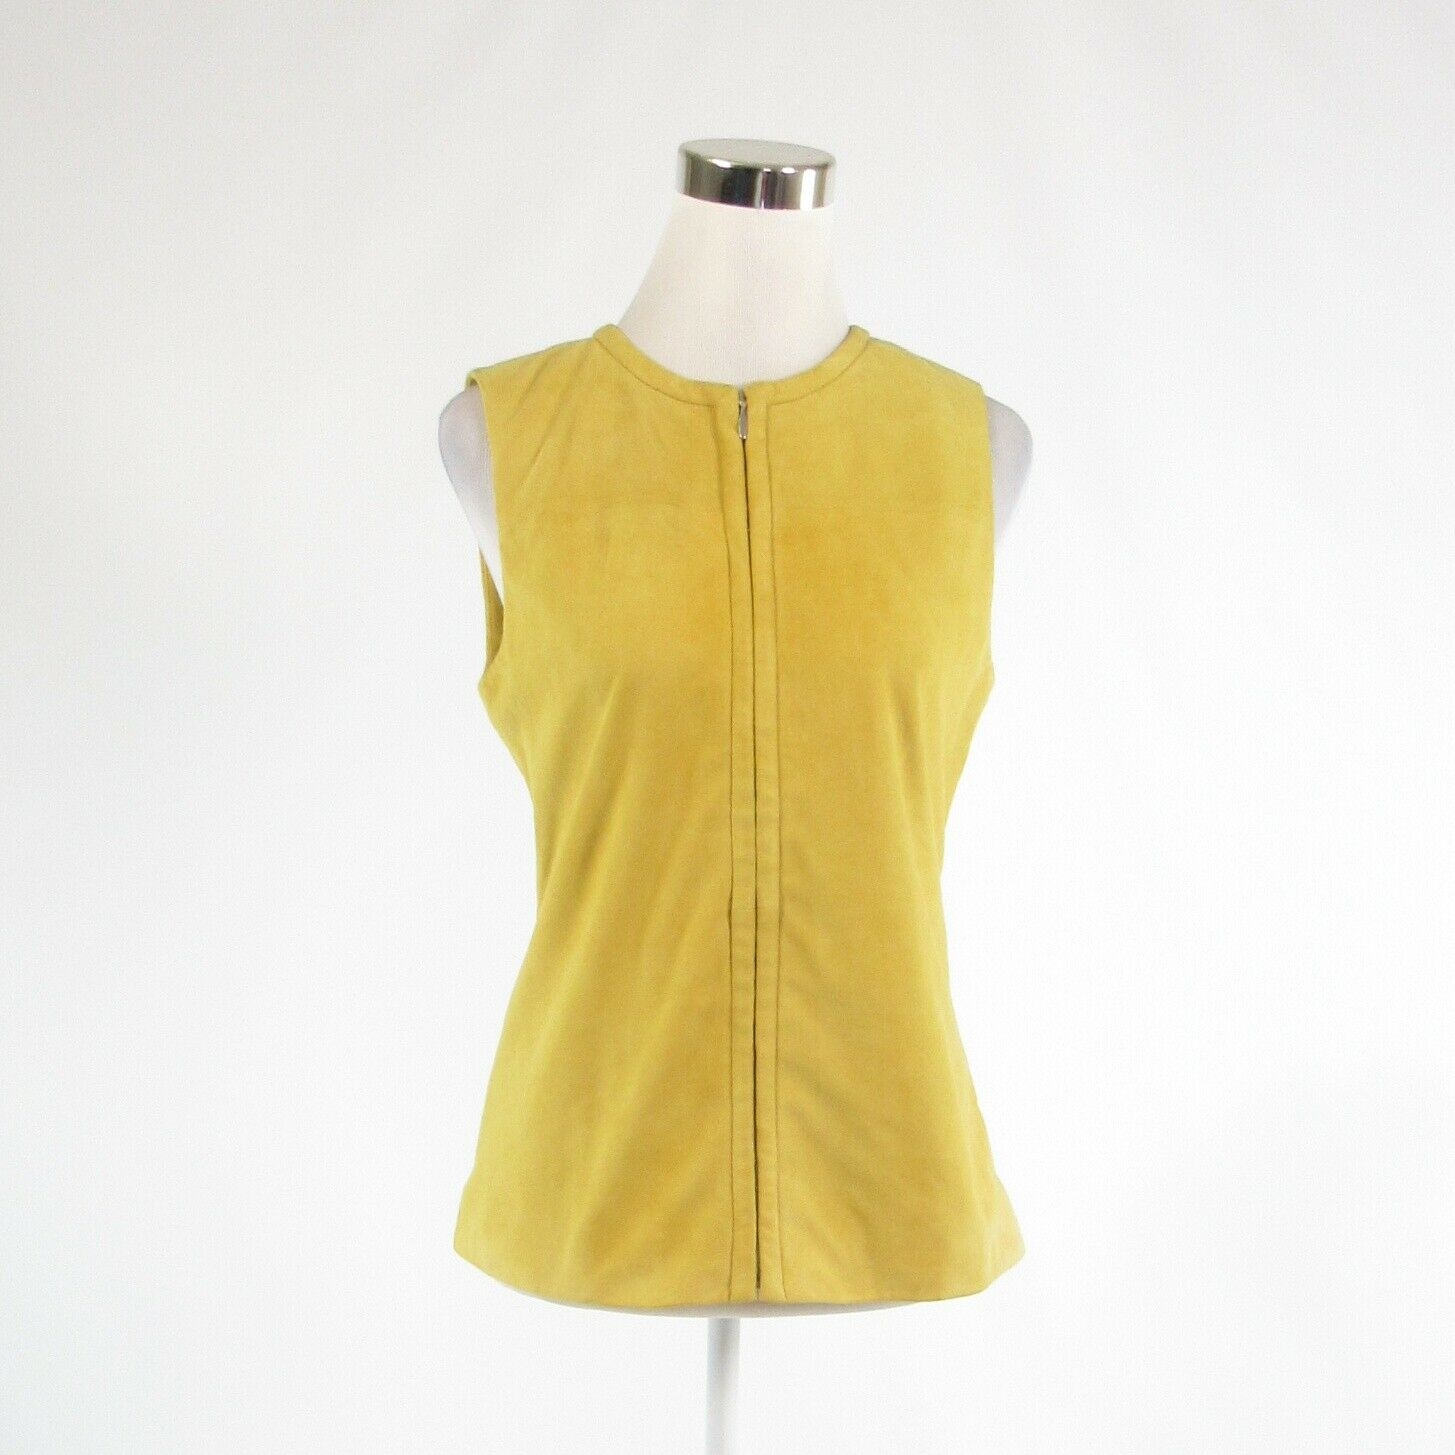 Mustard yellow suede TANNER Doncaster sleeveless vest 2 NWT